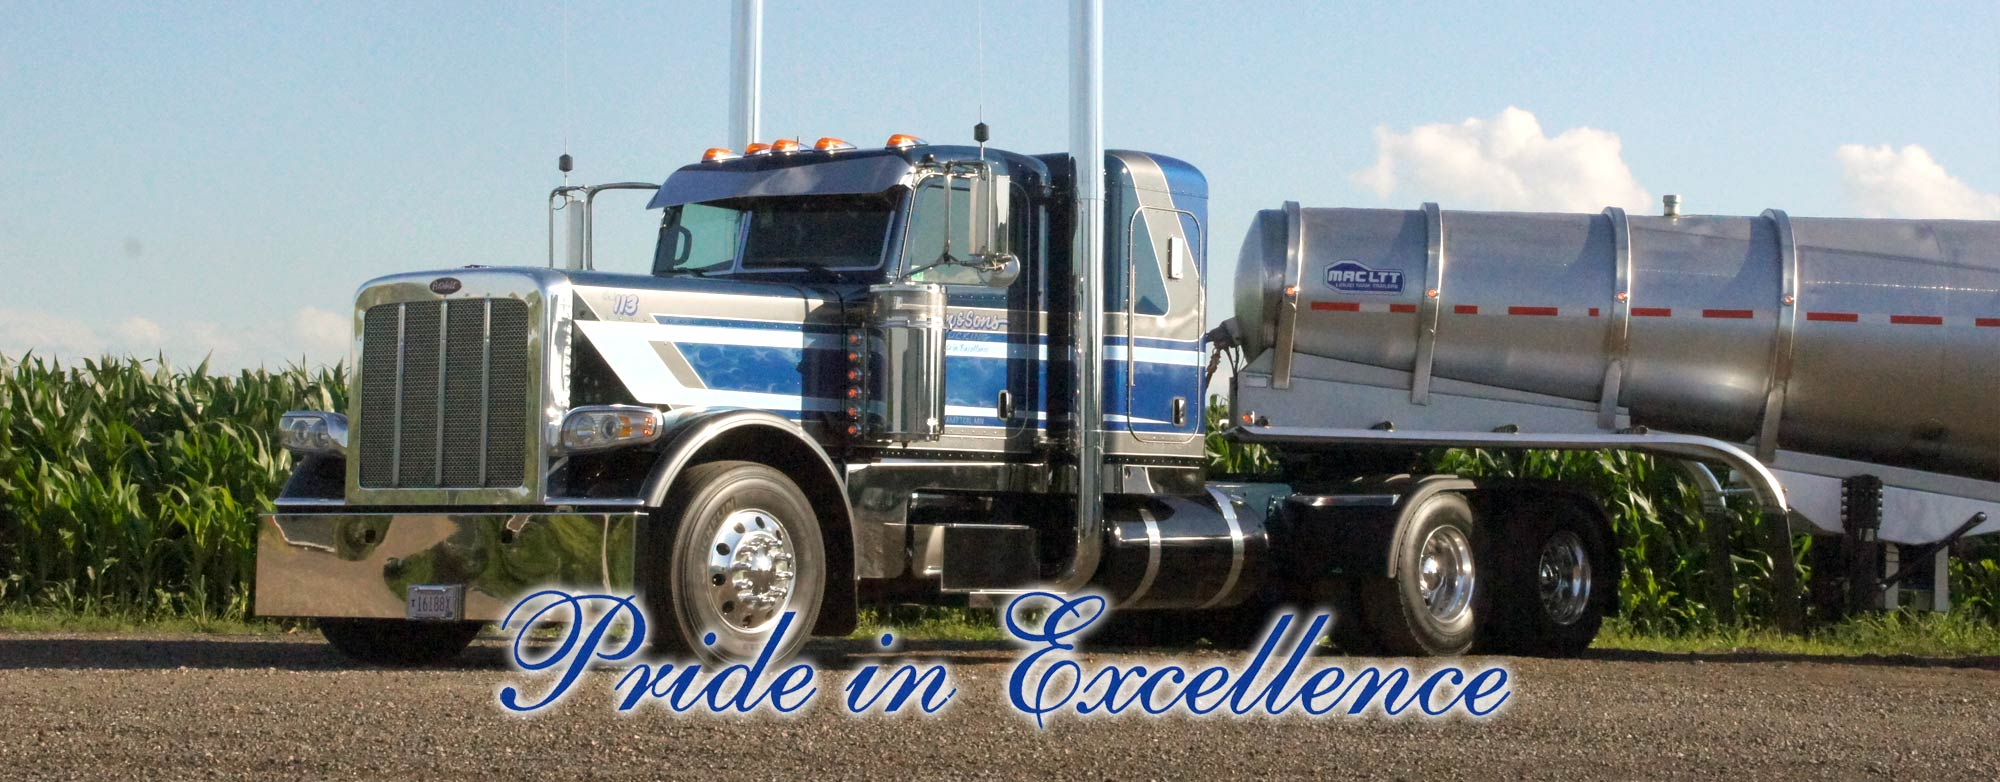 Eilen & Sons white and blue stripped semi truck hauling a belly dump trailer | Pride in Excellence